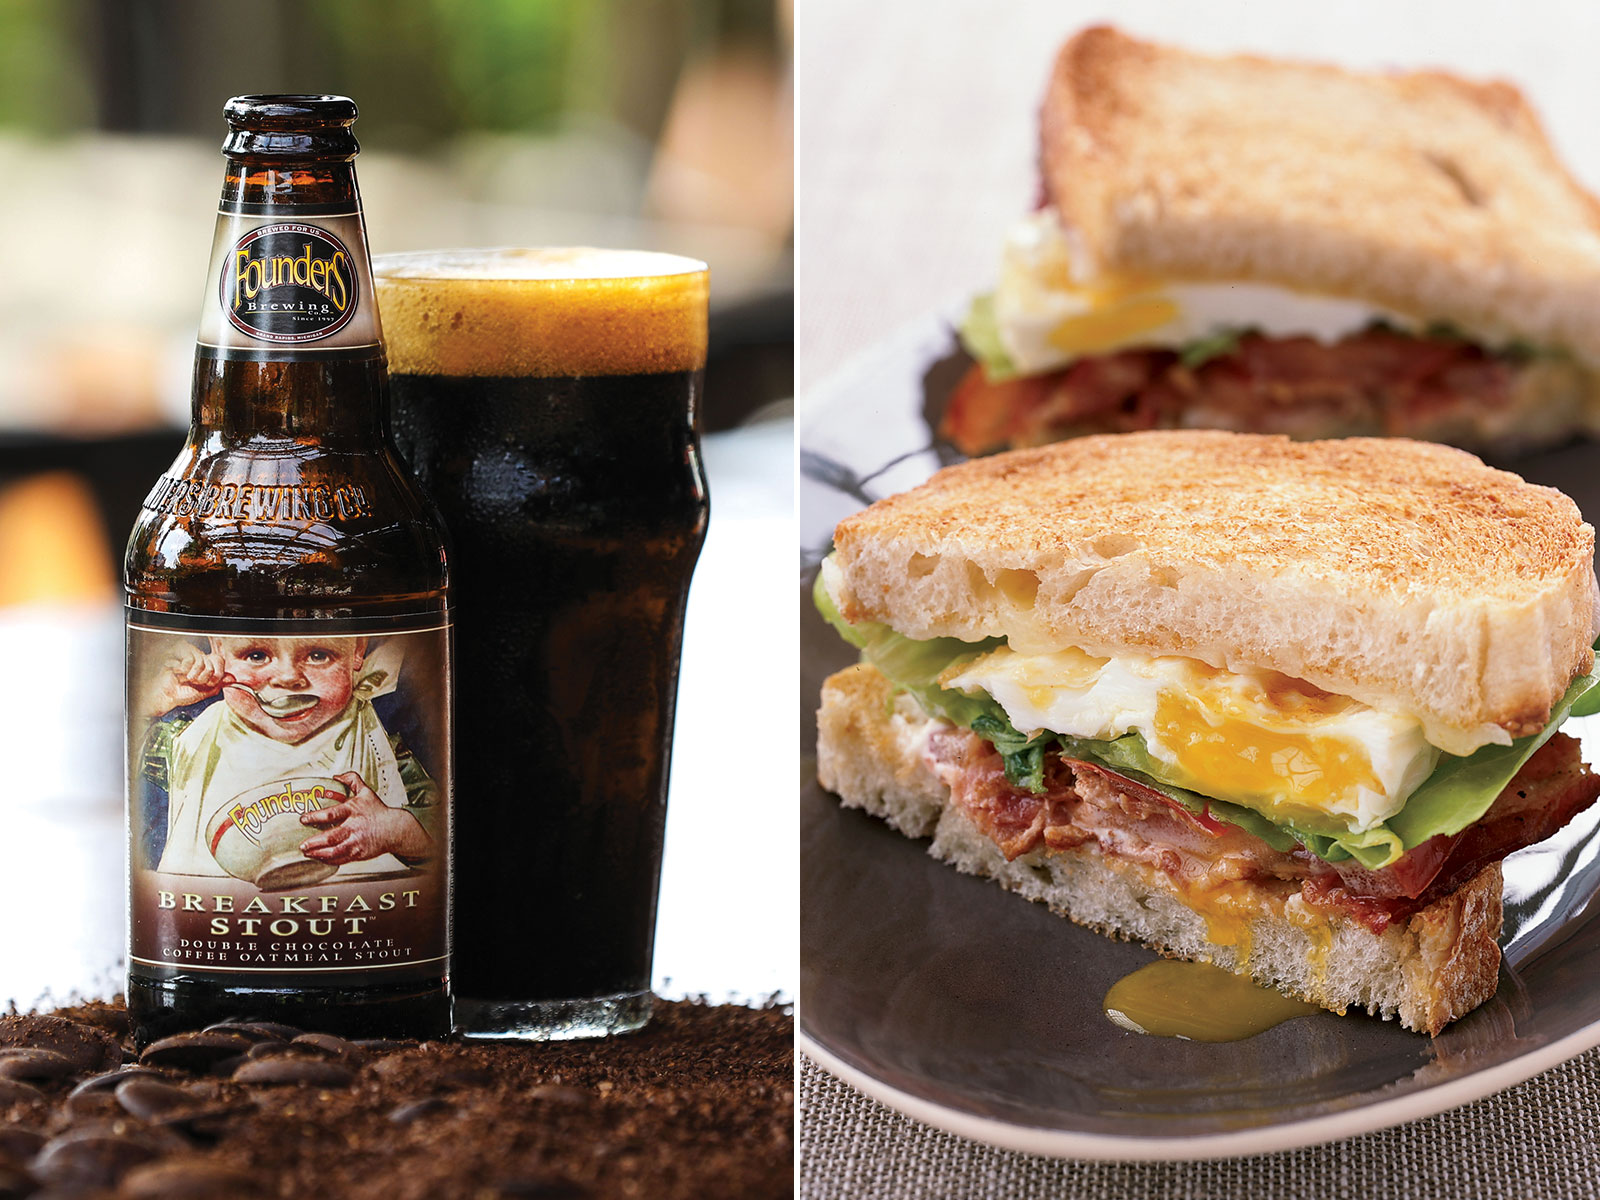 Bacon, Egg, and Cheese and Breakfast Stout